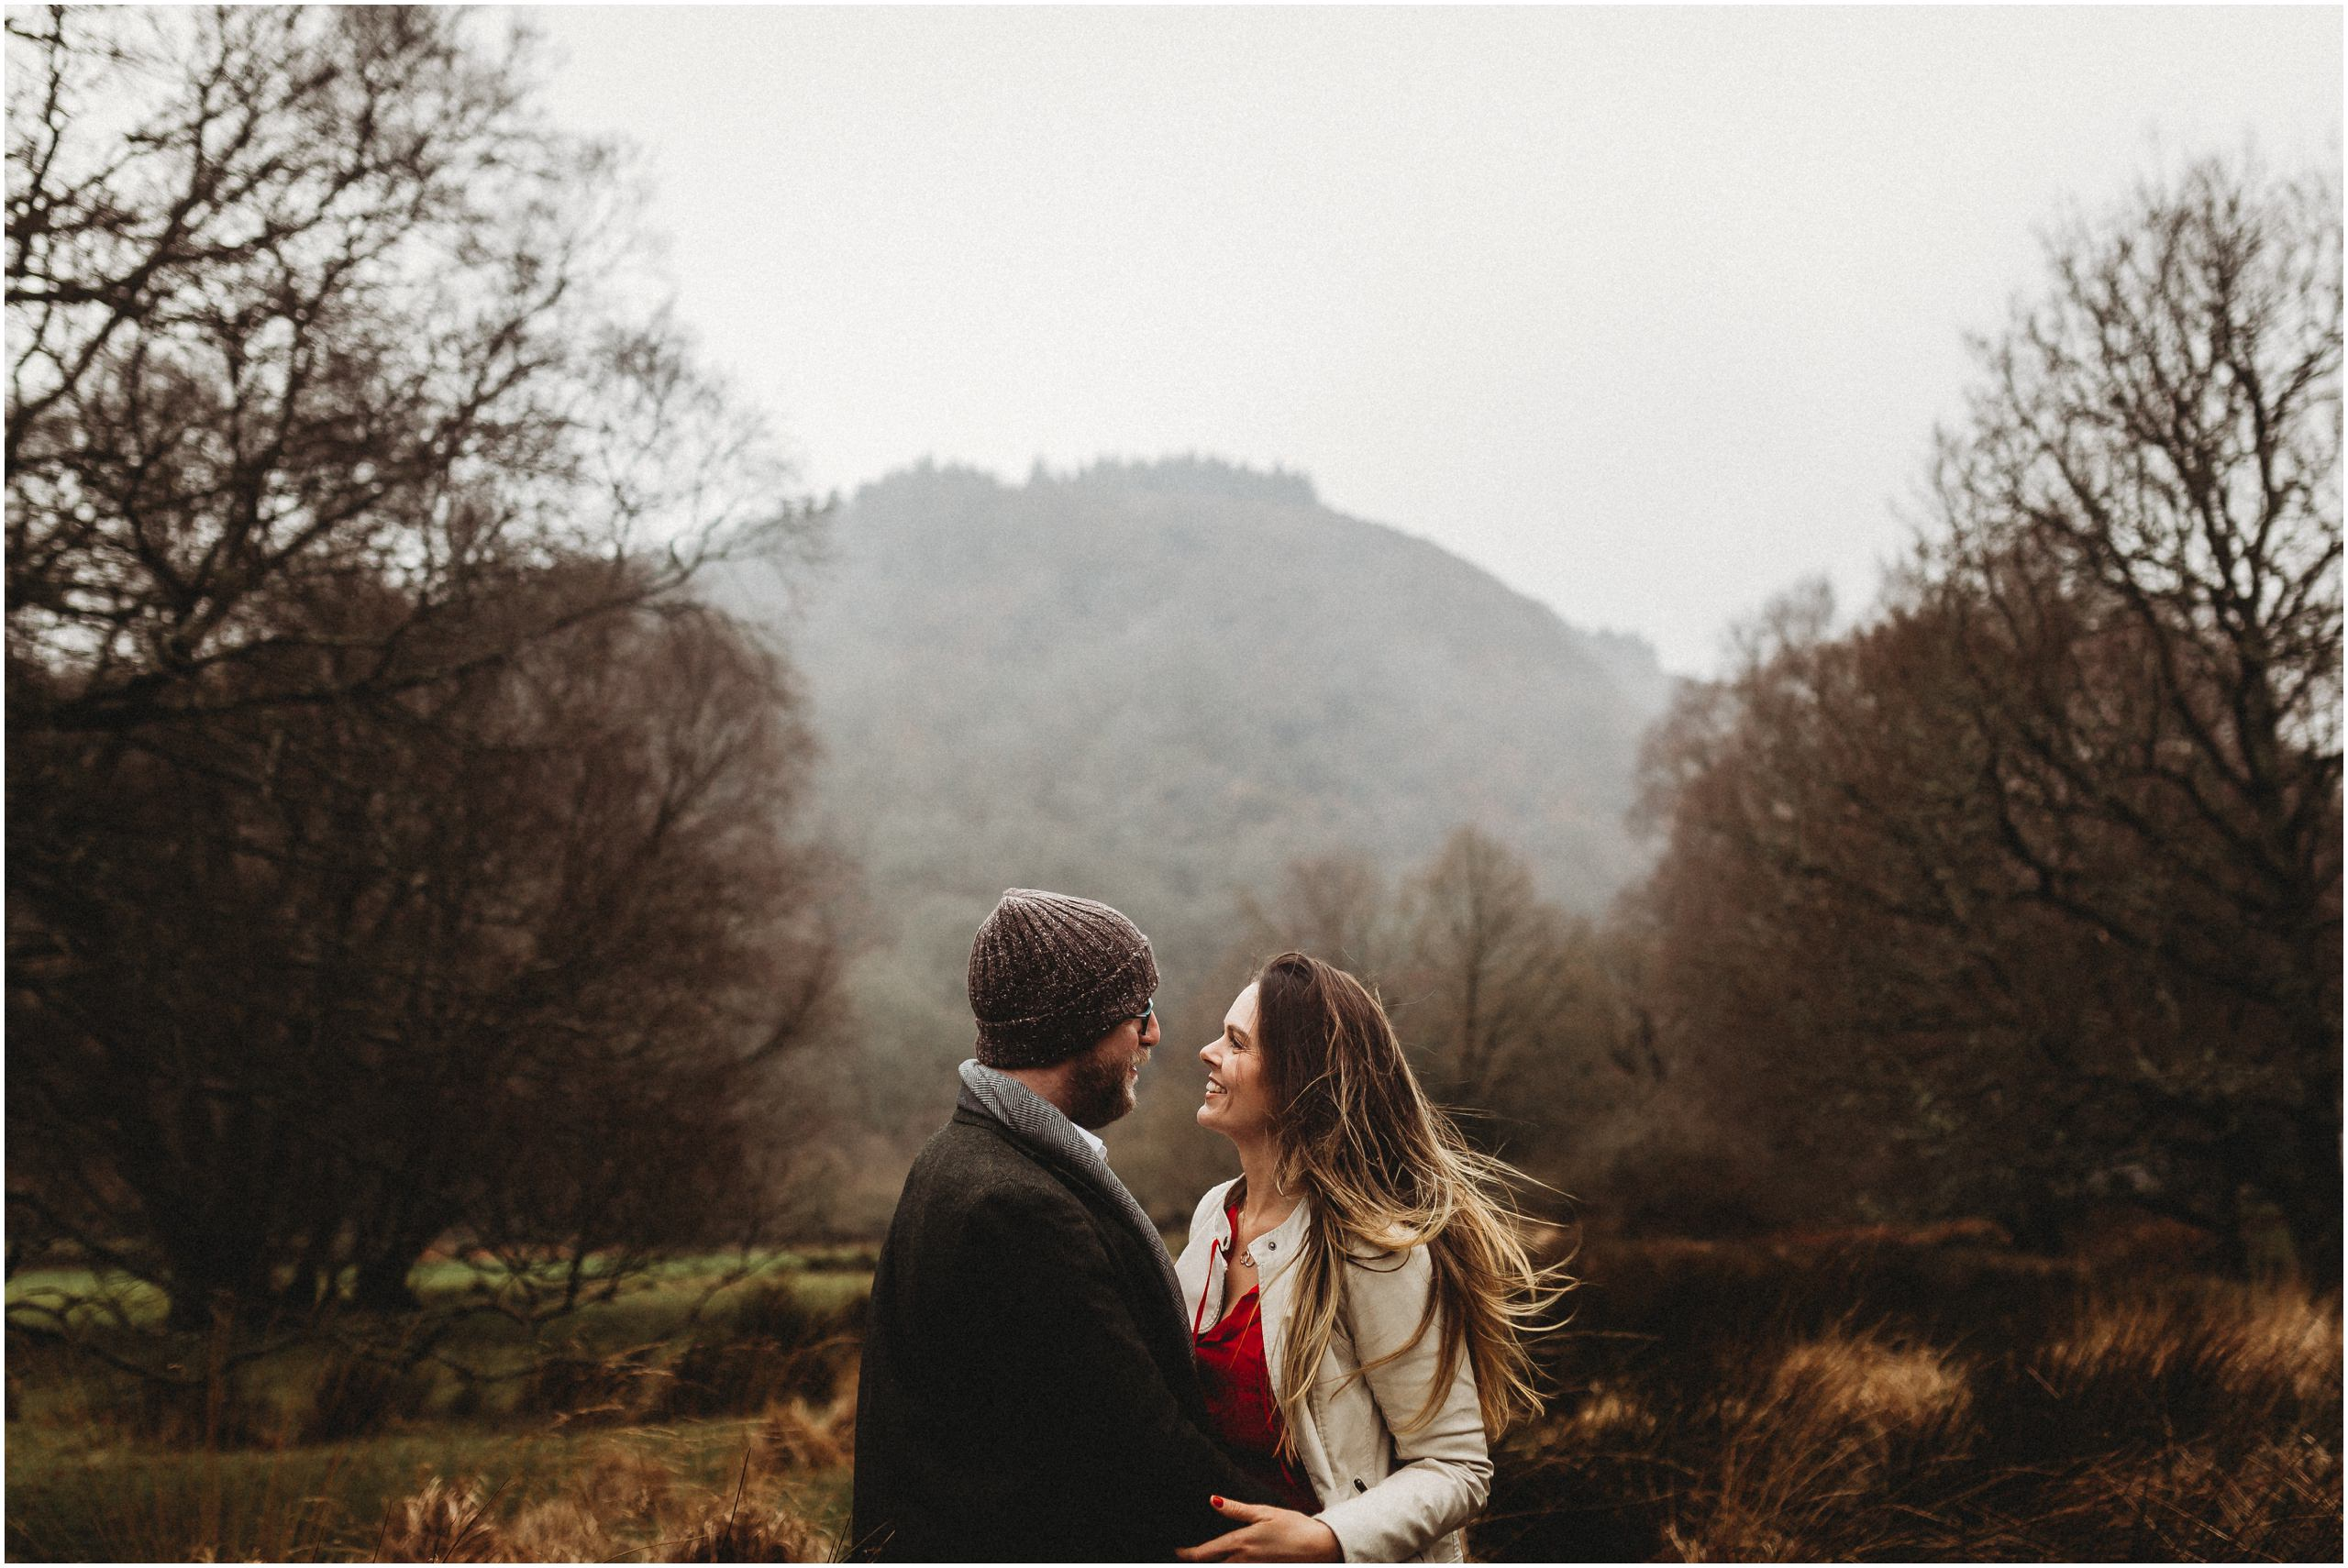 Johnny Corcoran Photography glendalough wicklow prewedding 0006 - Fun and Relaxed wedding and elopement photography in Ireland, perfect for adventurous and outdoorsy couples